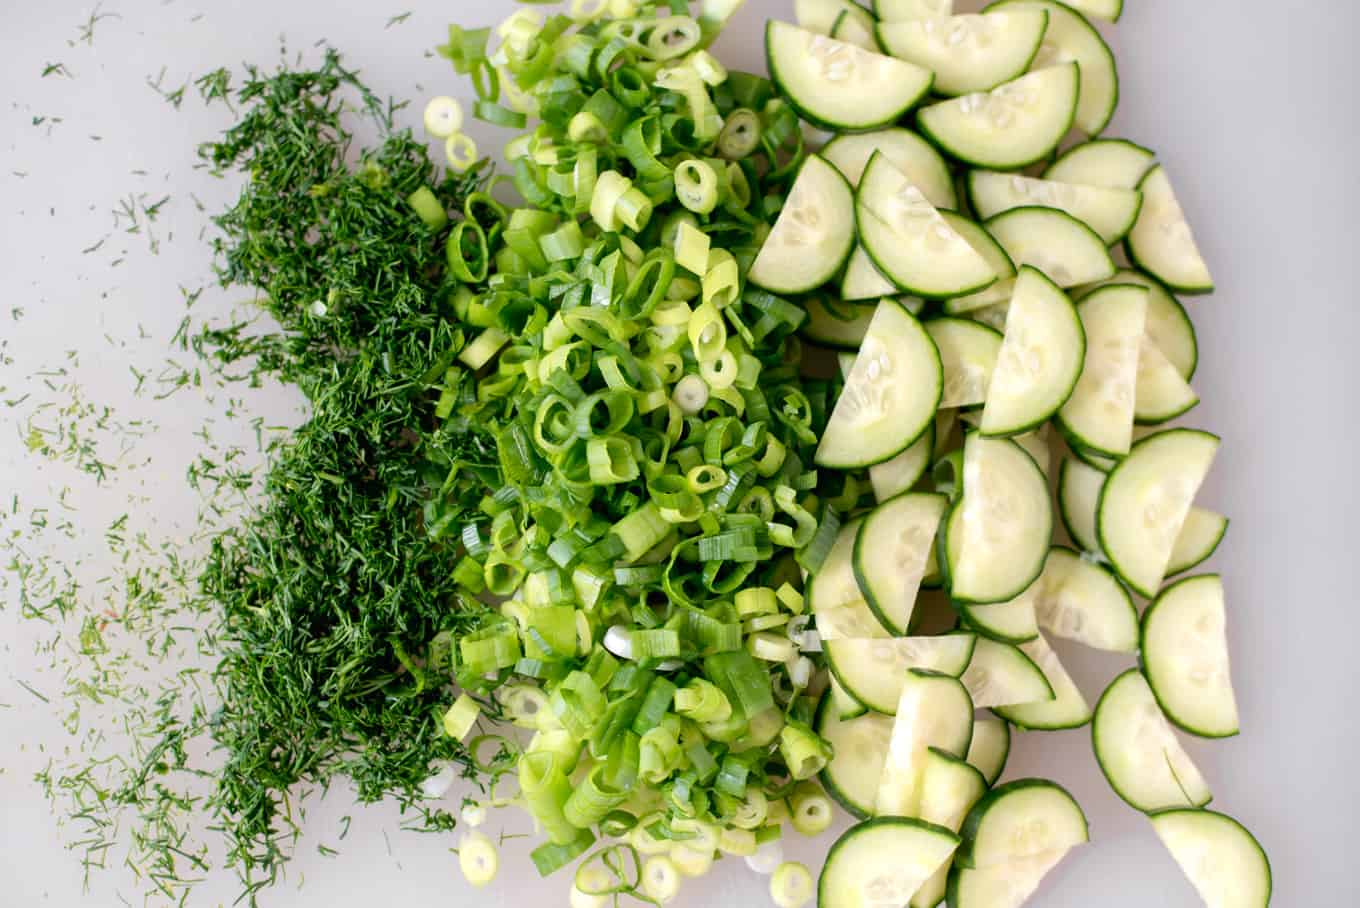 Chopped dill, scallions, and cucumbers on a cutting board.